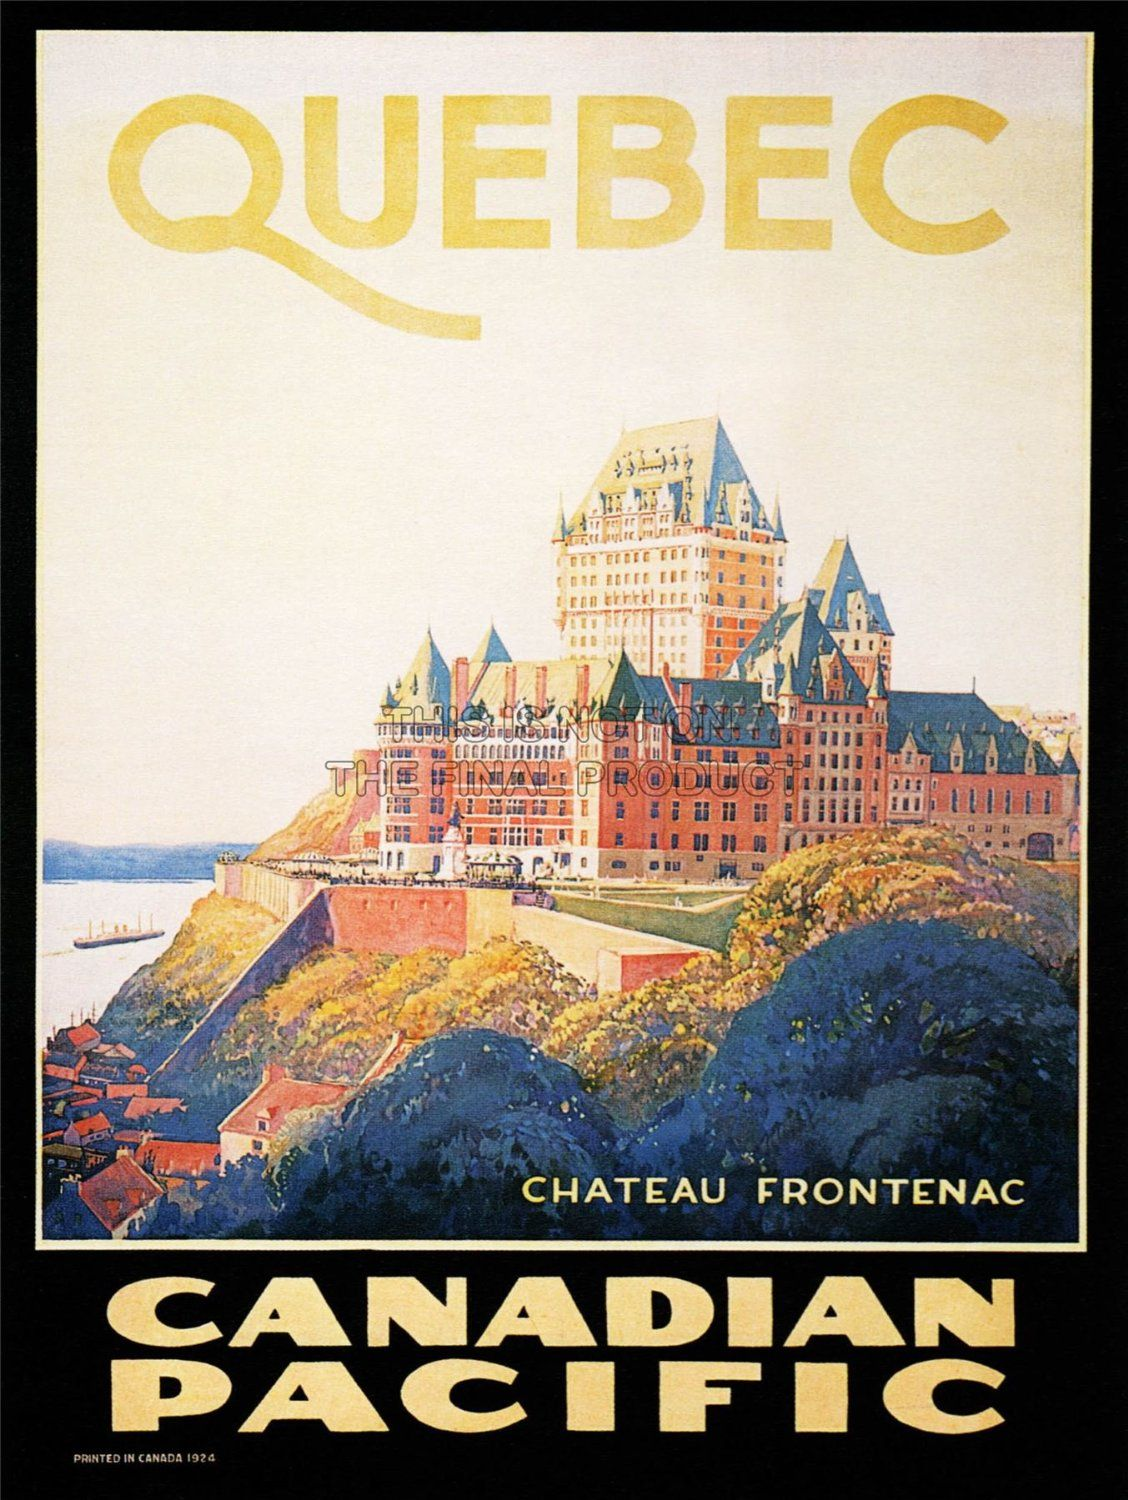 vintage posters for kitchen cabinets cheap travel quebec canada canadian pacific chateau frontenac